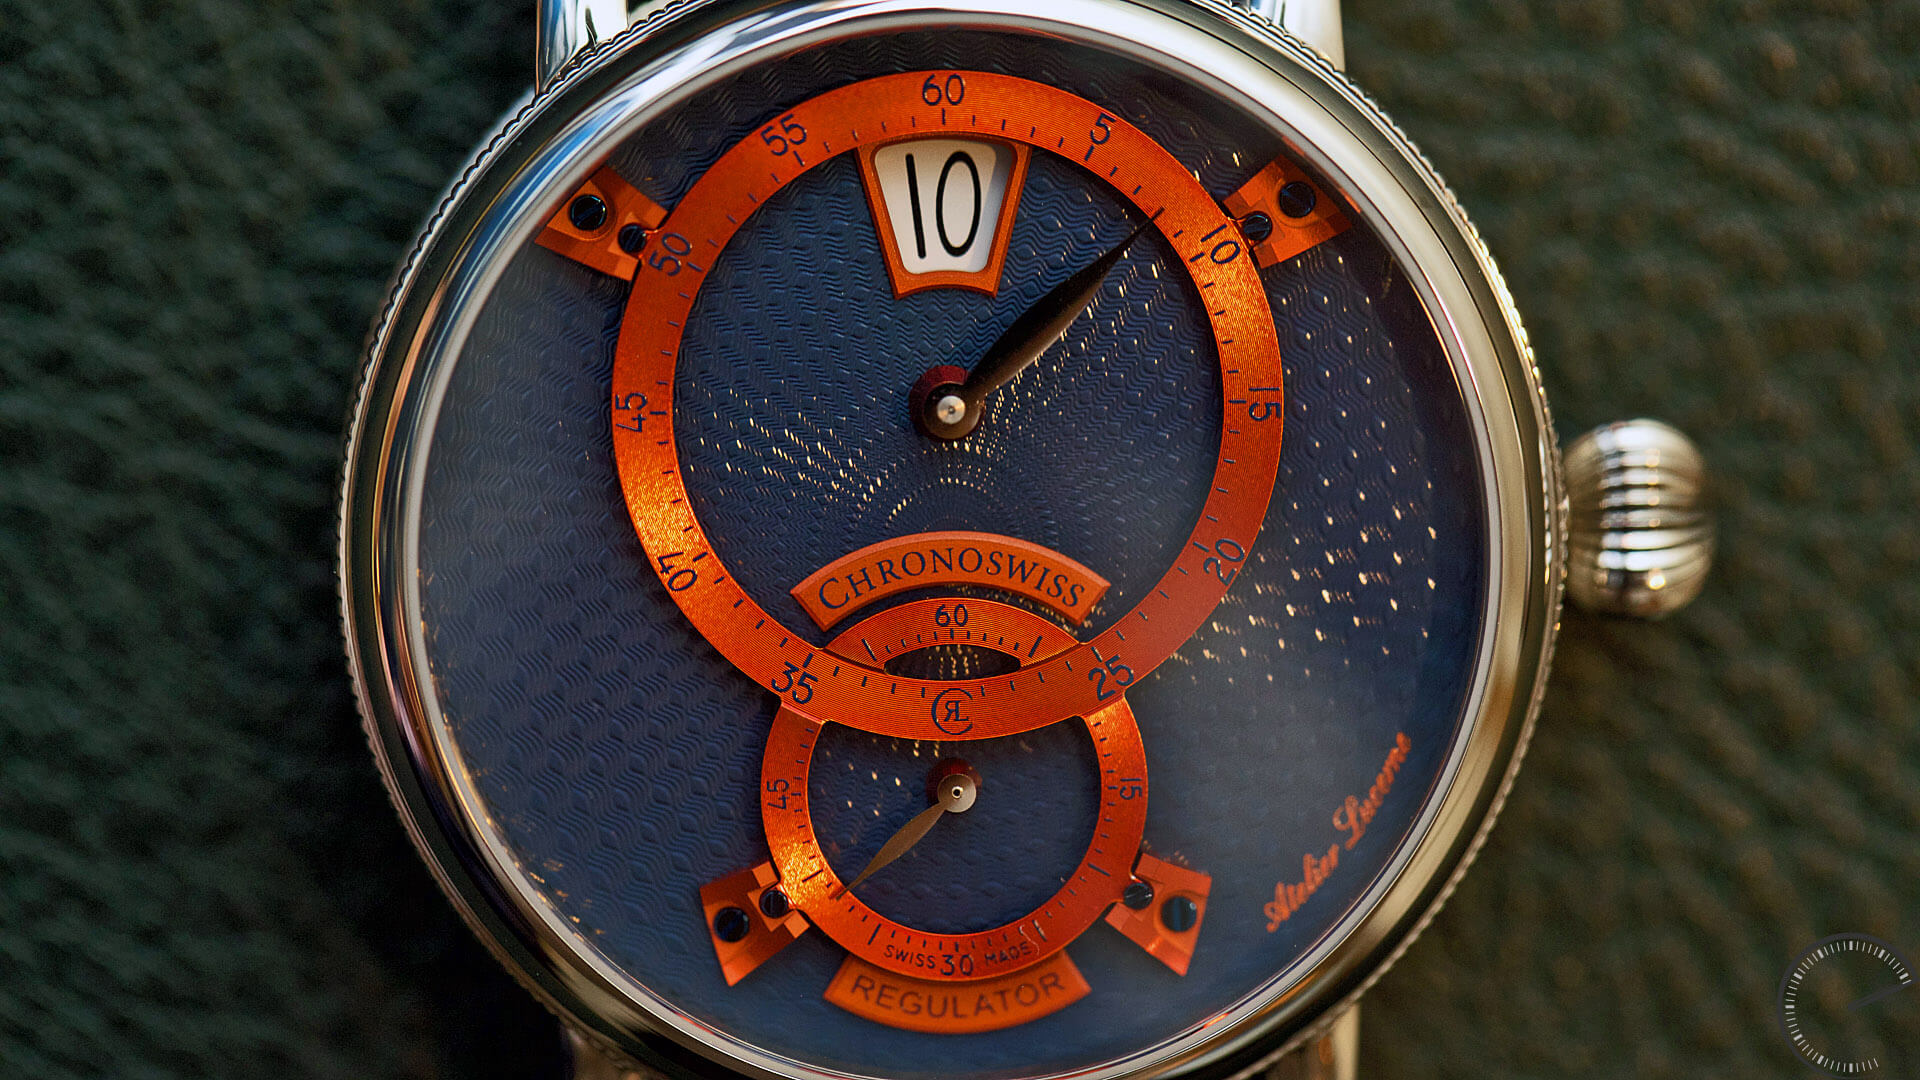 Chronoswiss_Sirius_Flying_Regulator_Jumping_Hour_Ref.CH-8323-BLOR_dial - ESCAPEMENT magazine by Angus Davies